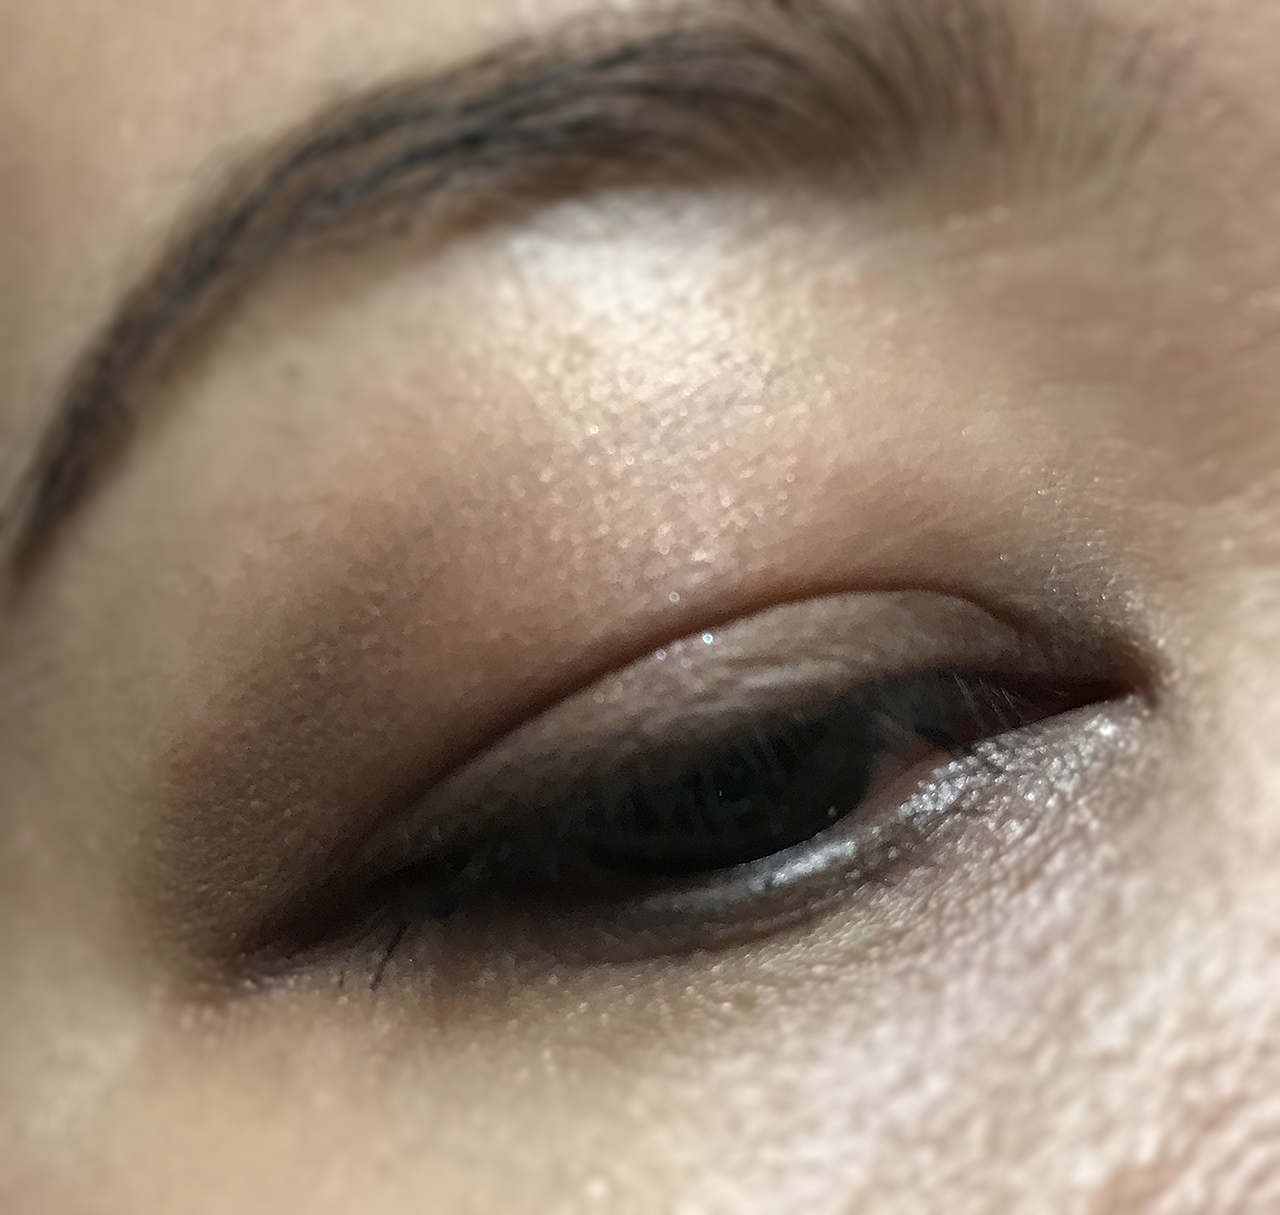 Zoeva The Basic Moment Eyeshadow Palette eye makeup look 1